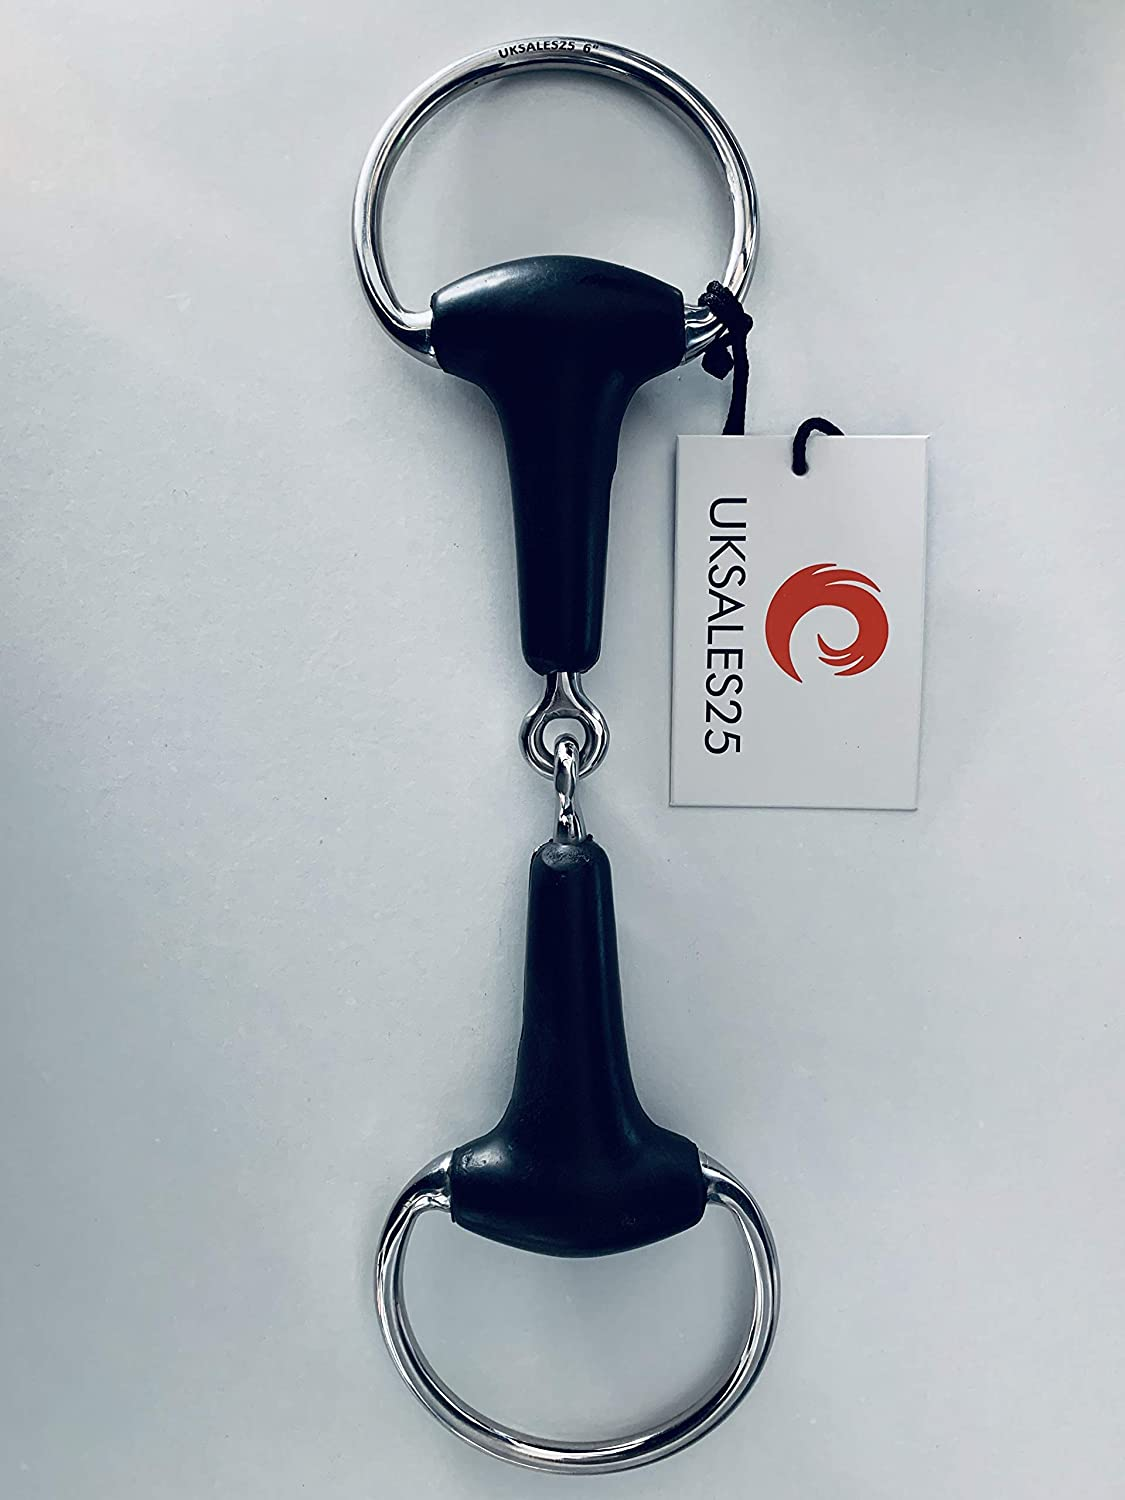 4.5 UKSALES25 Eggbutt Single Jointed Snaffle Bit with Rubber Horse Bits